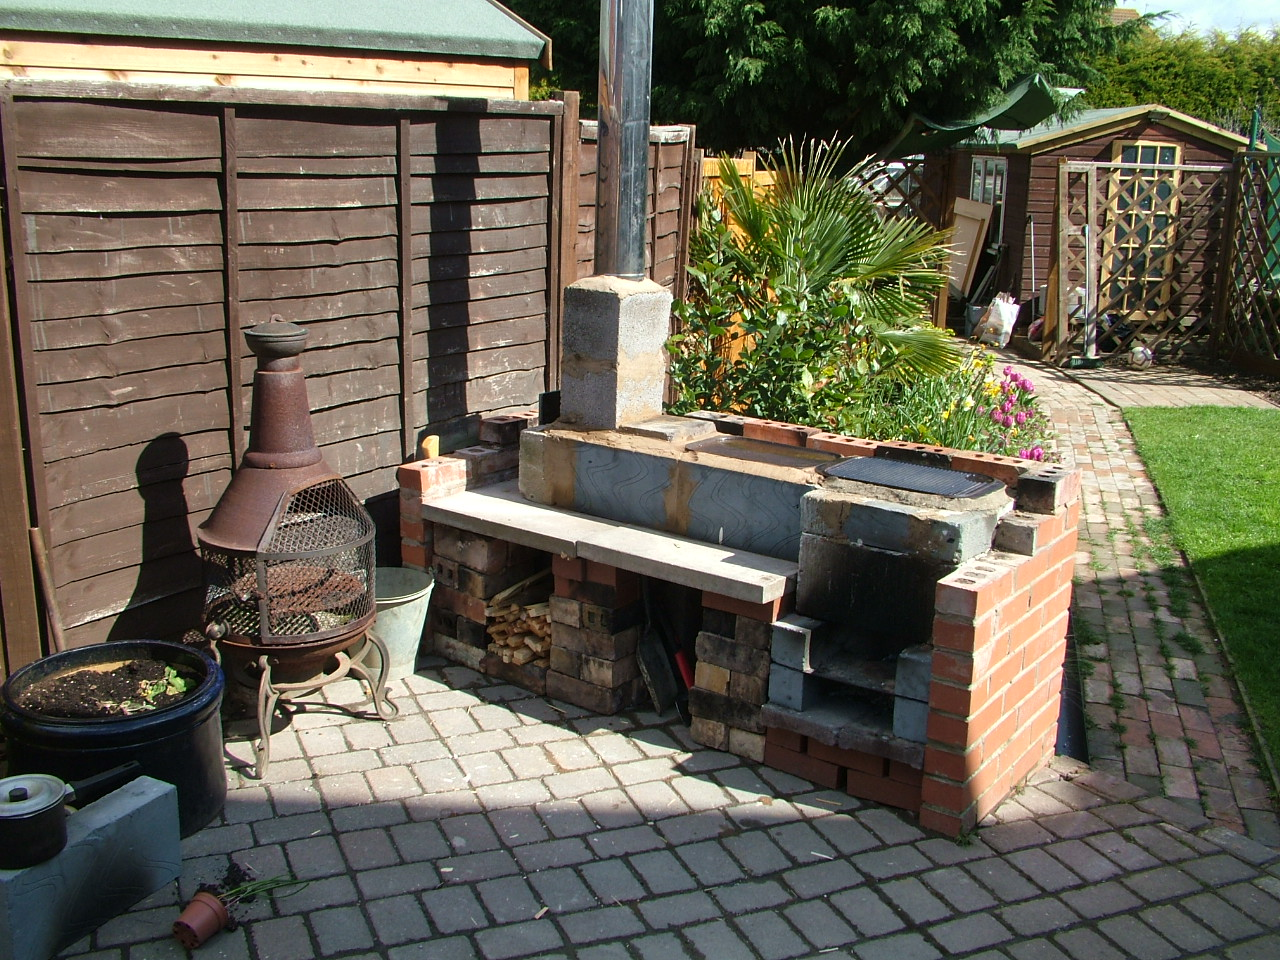 garage wood stove ideas - Rocket Stove progressing wood burning stoves forum at